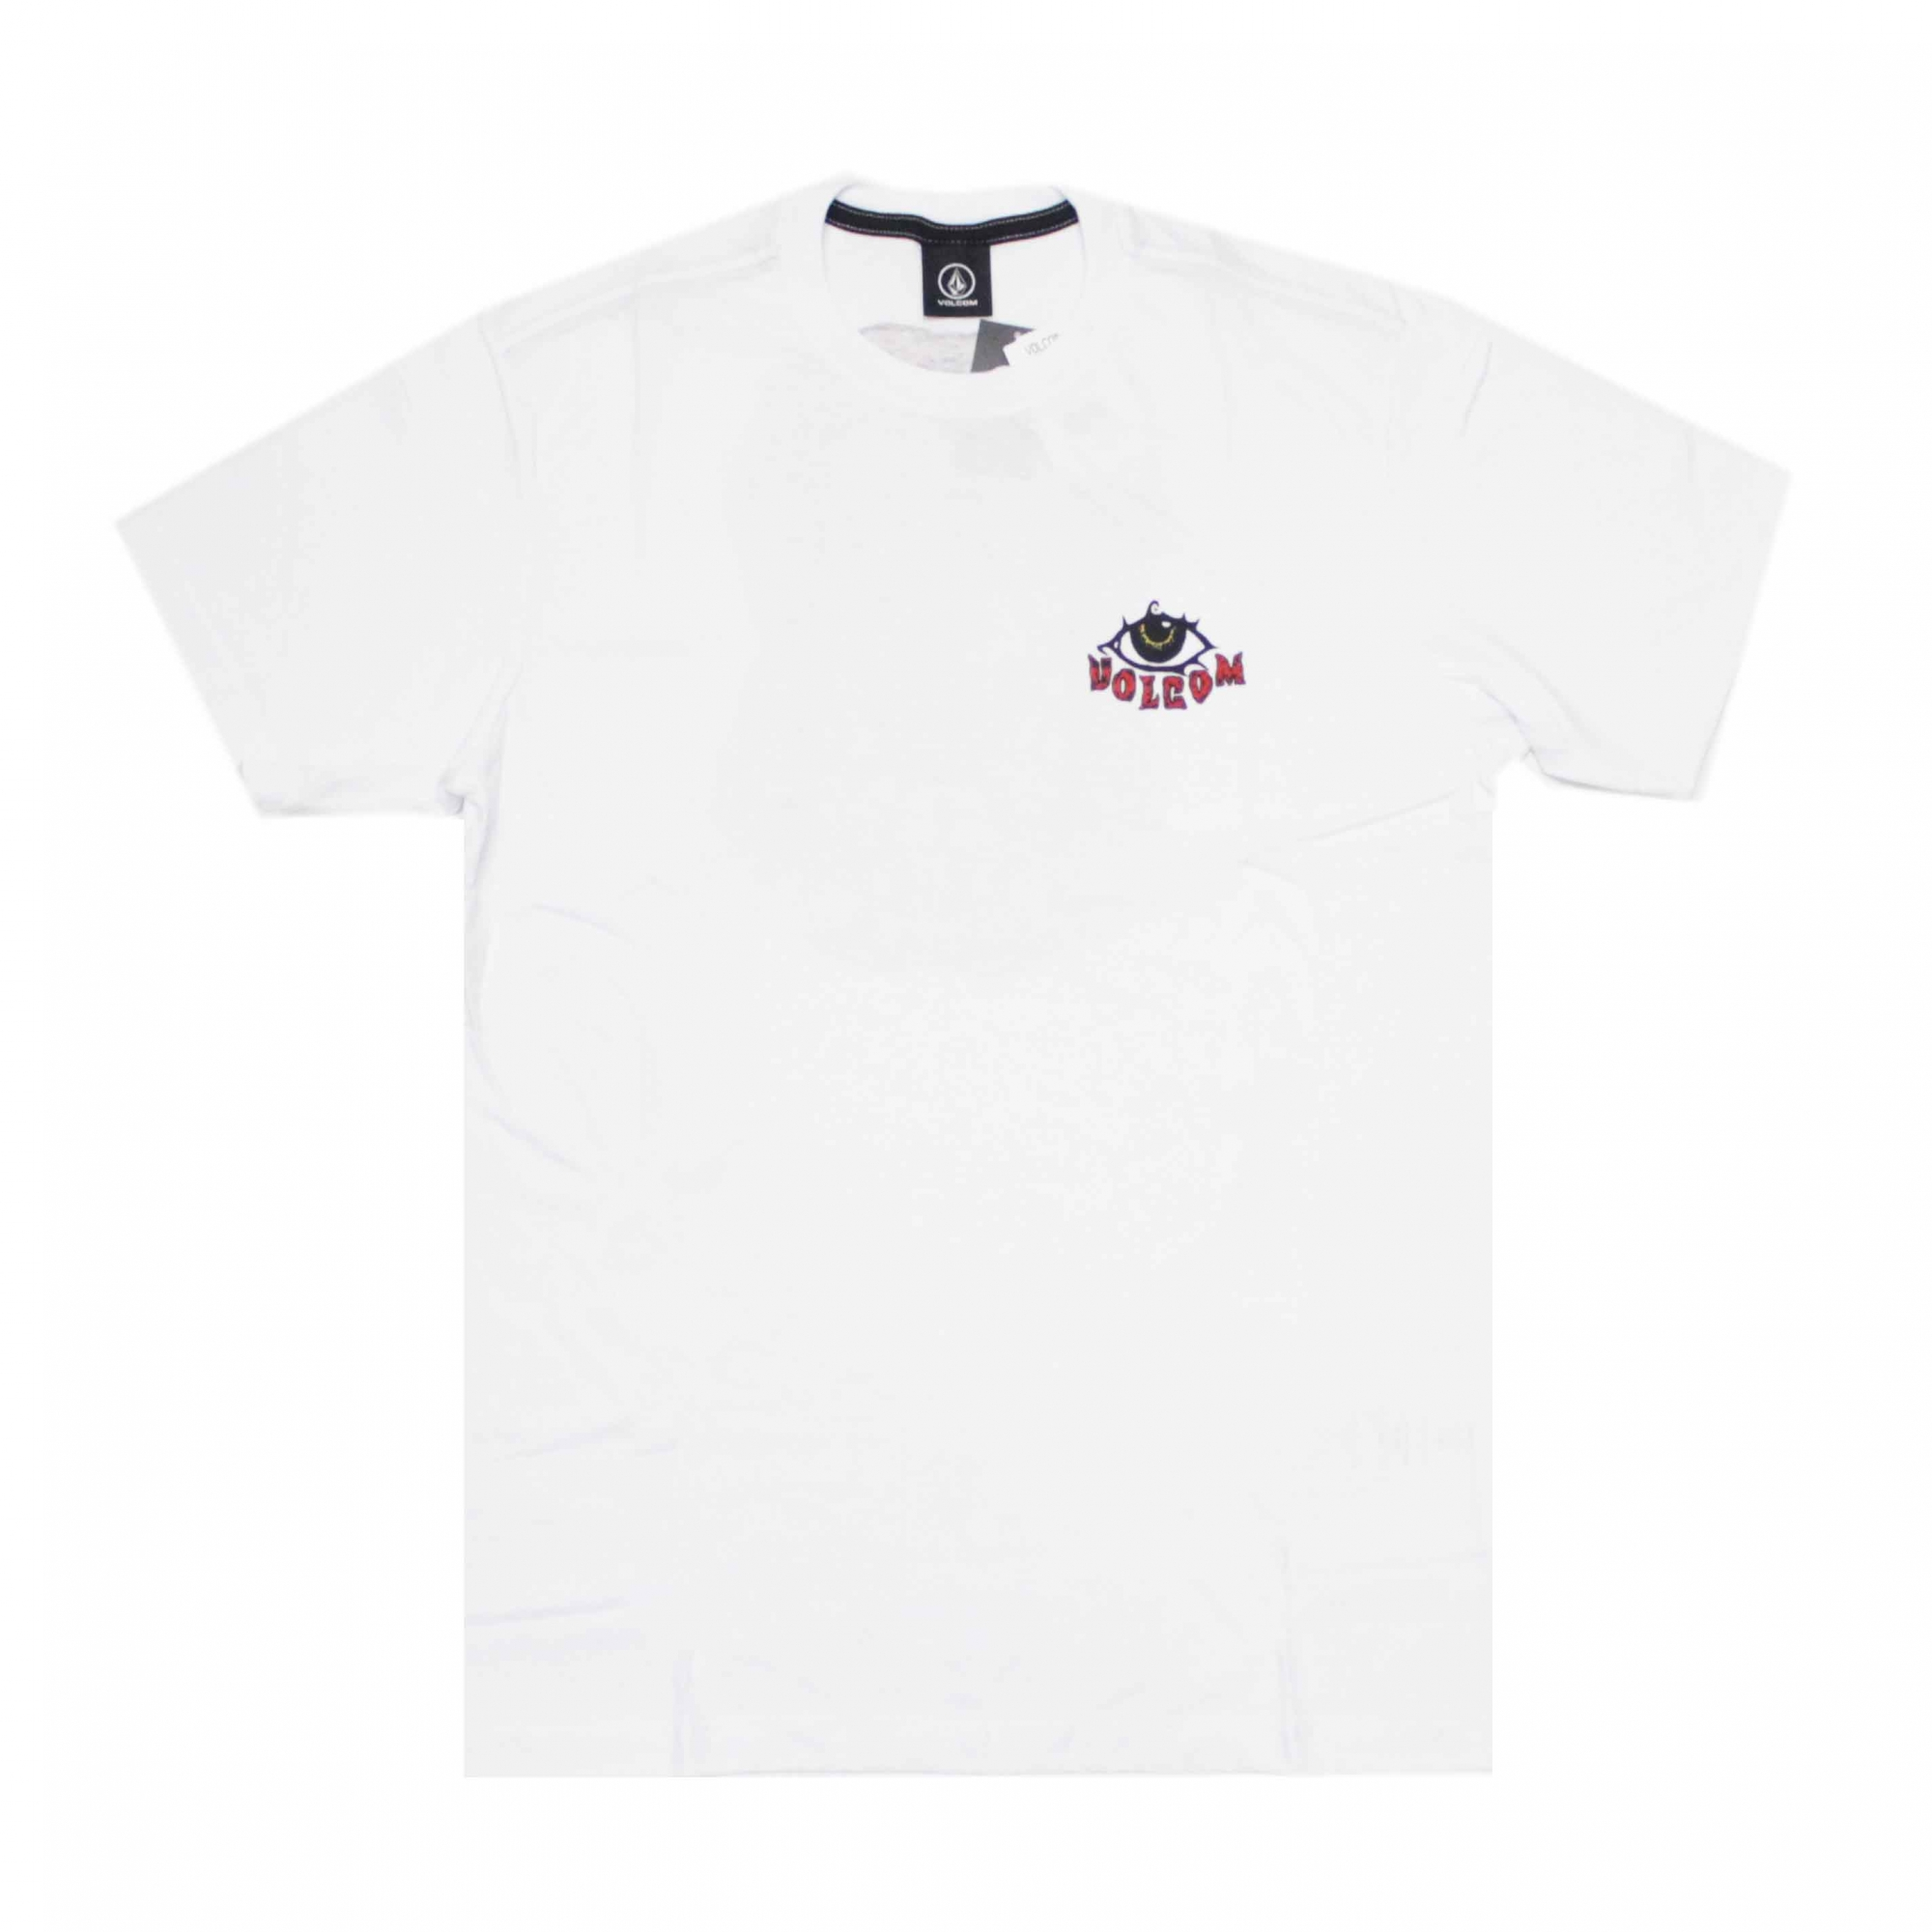 Camiseta Volcom Stone Grown - Branco